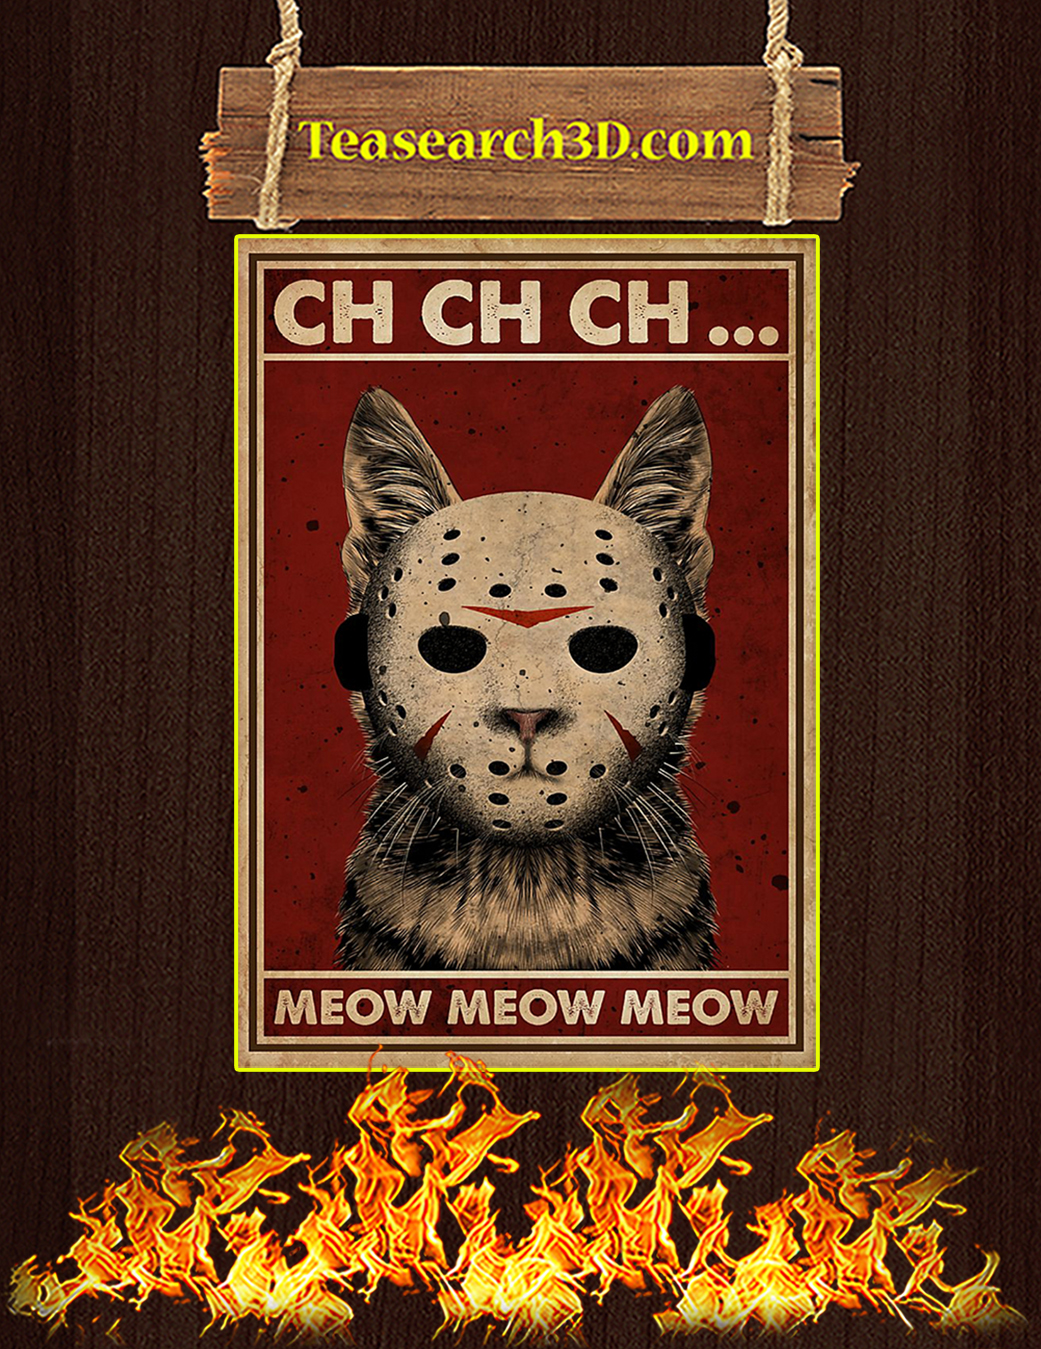 Cat ch ch ch meow meow meow poster A1